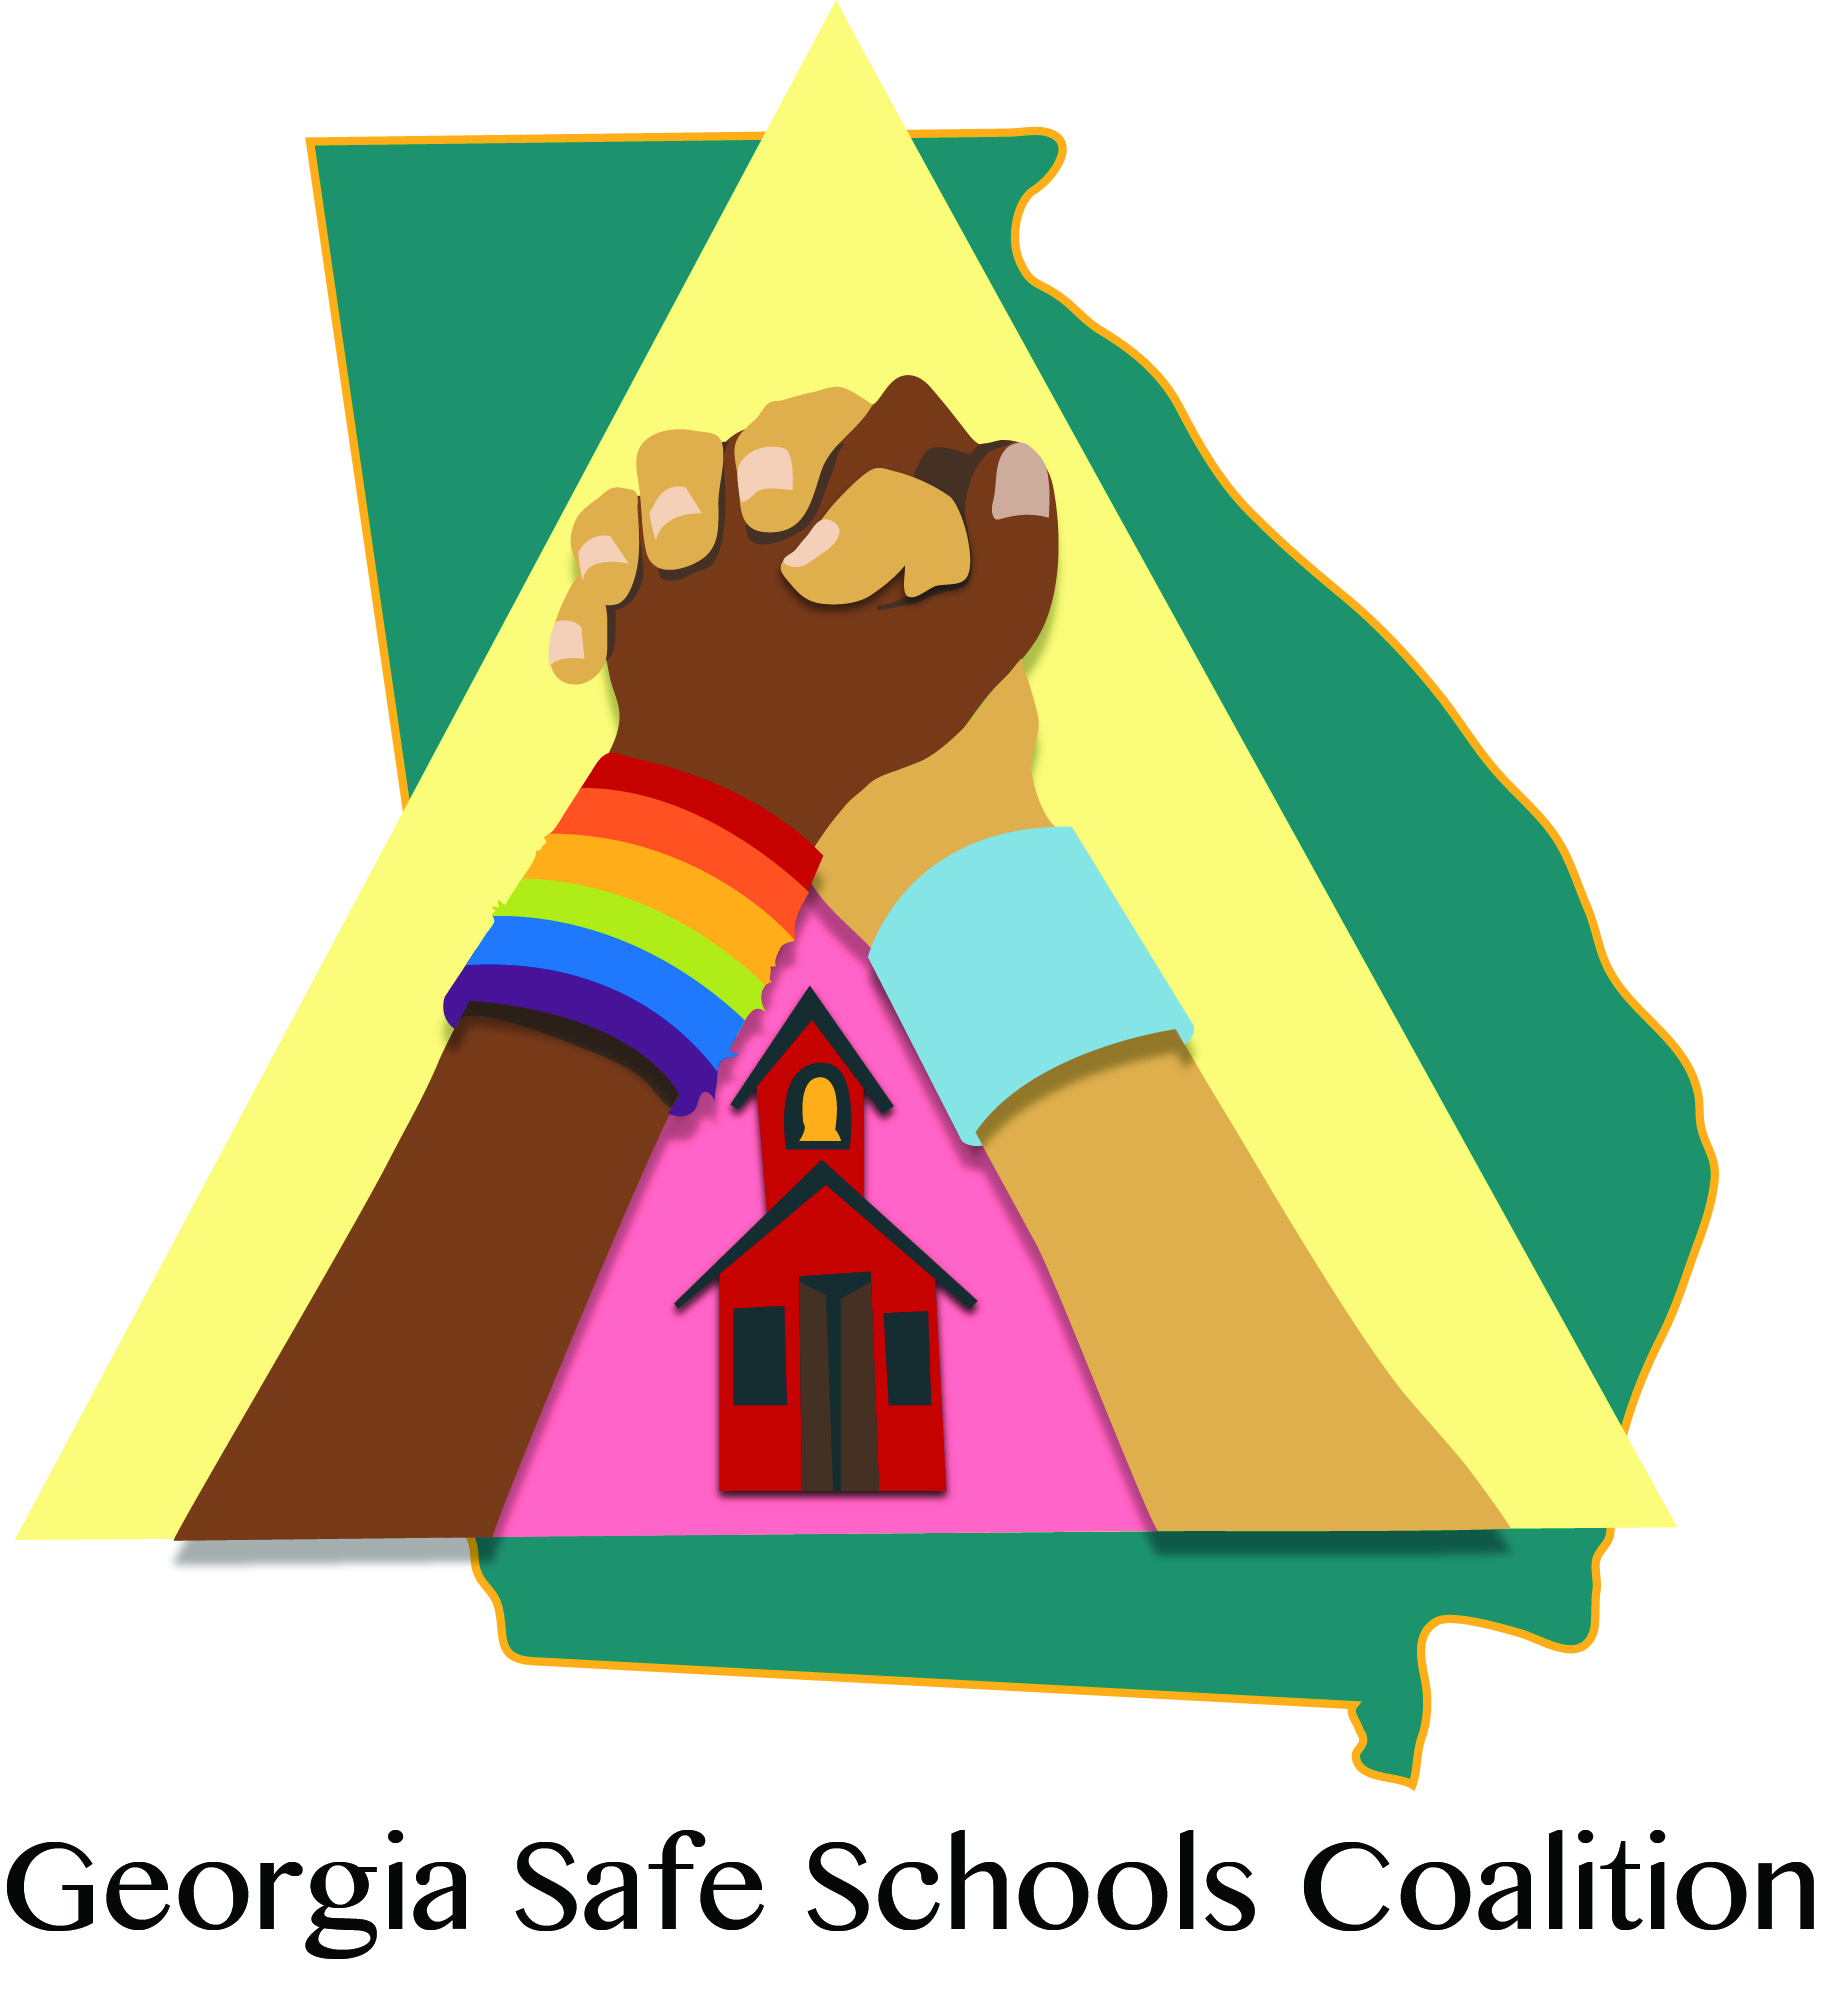 Georgia Safe Schools Coalition